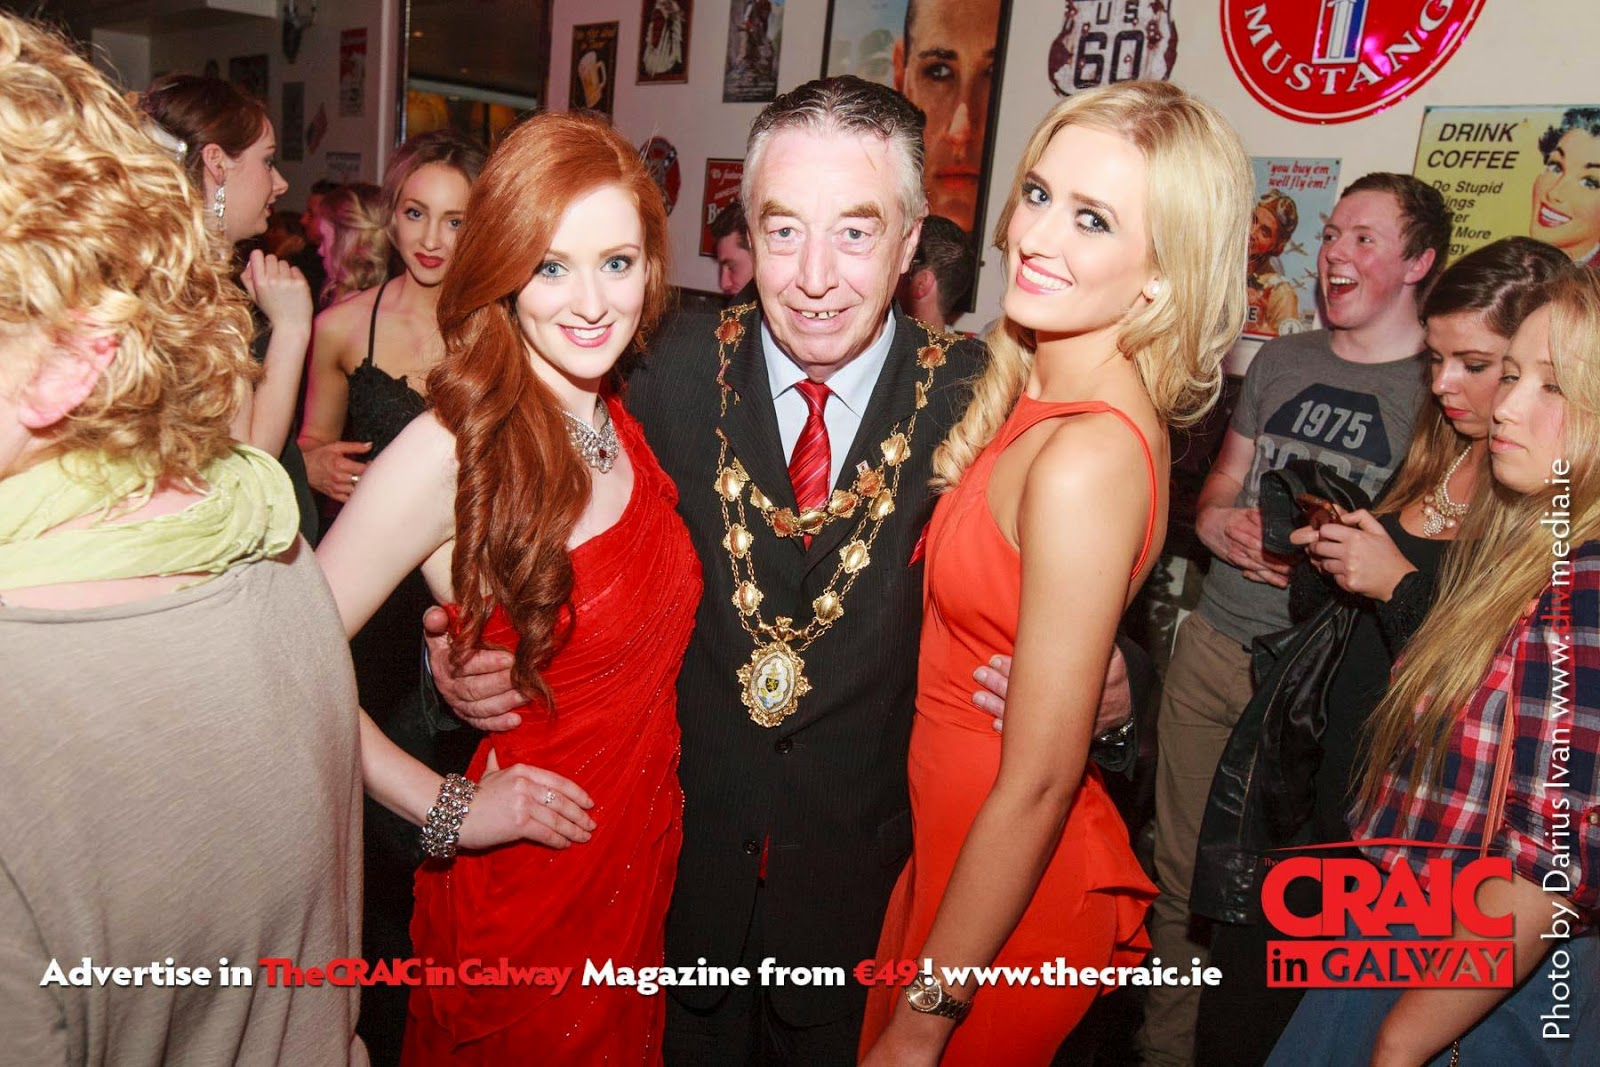 Miss Galway 2014